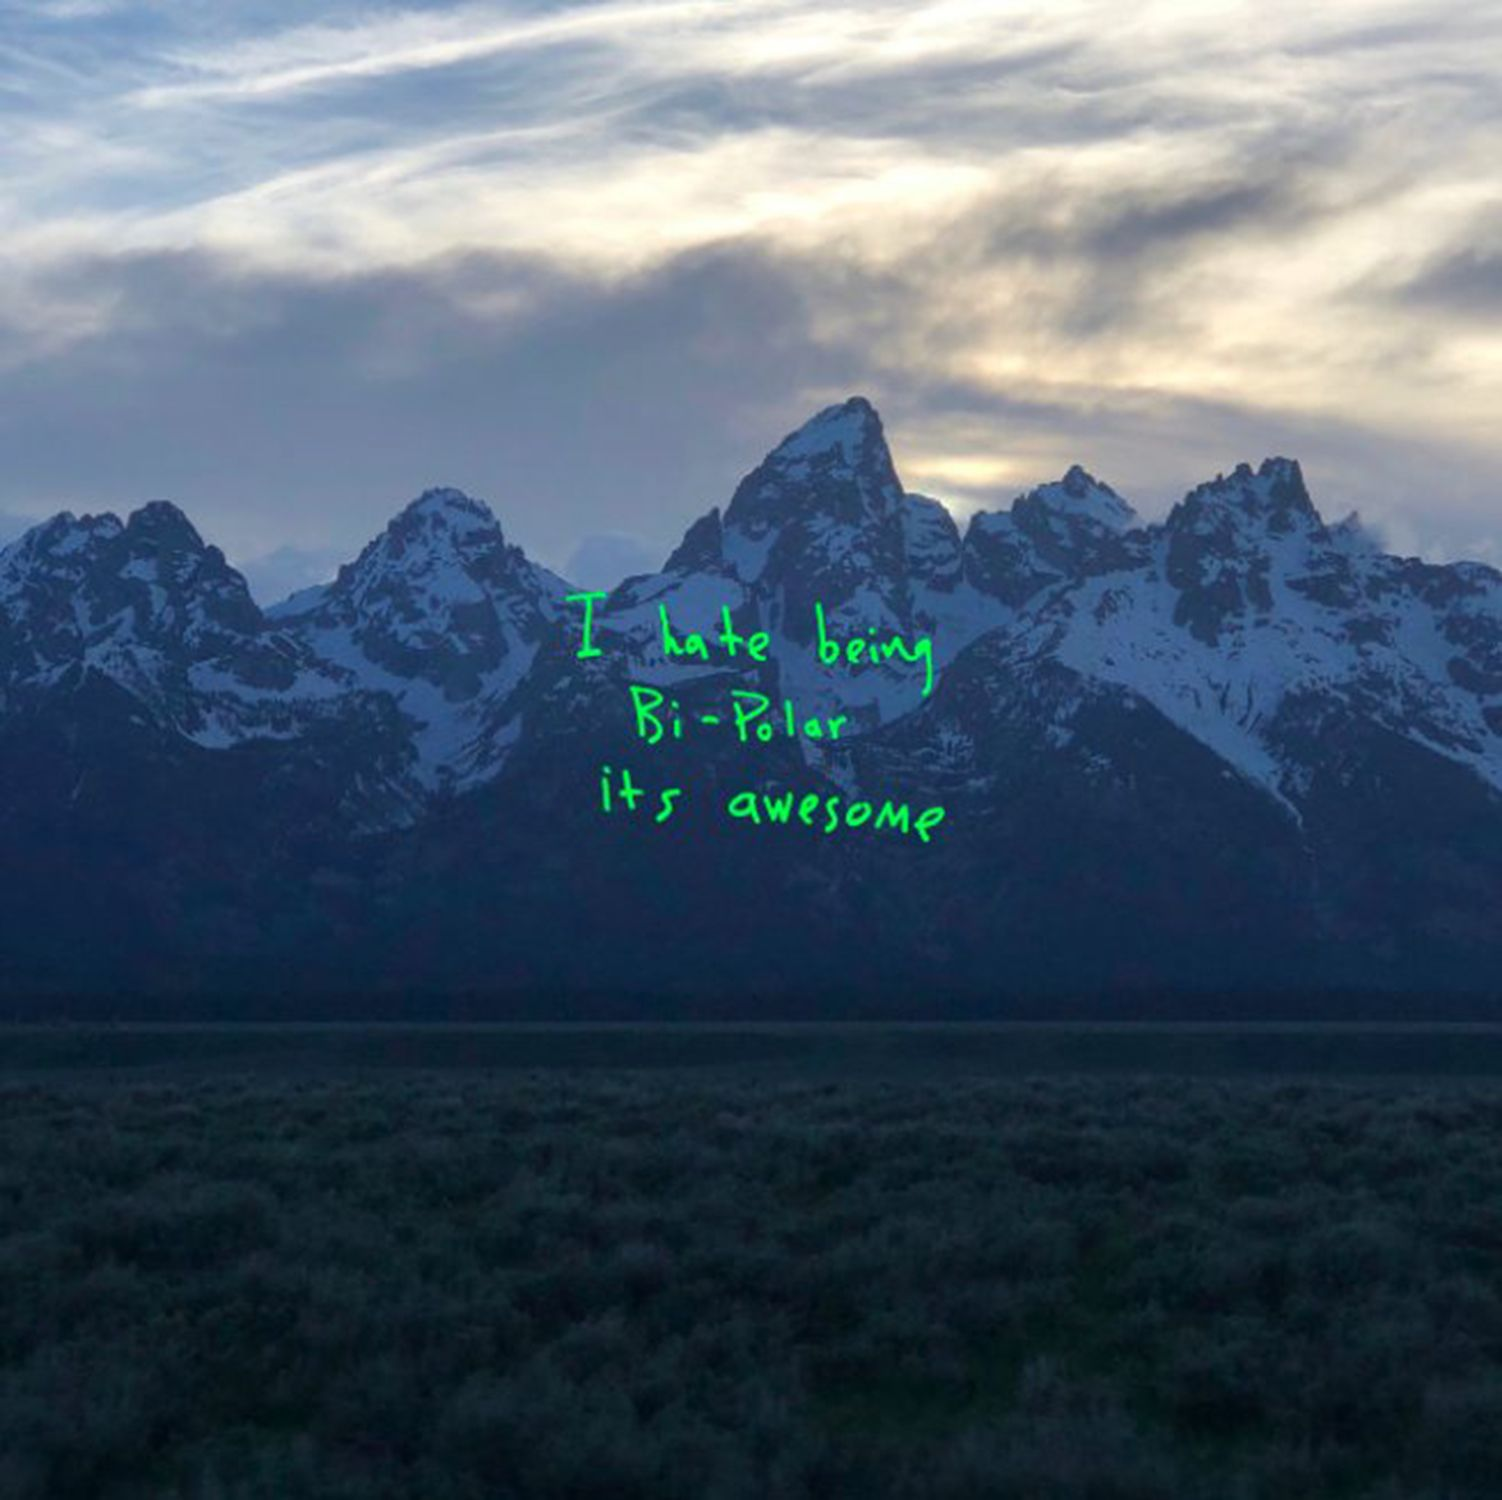 Kanye West Shot His Bipolar Album Cover En Route To Wyoming Listening Party Kanye West New Album Kanye West Albums Kanye West Album Cover